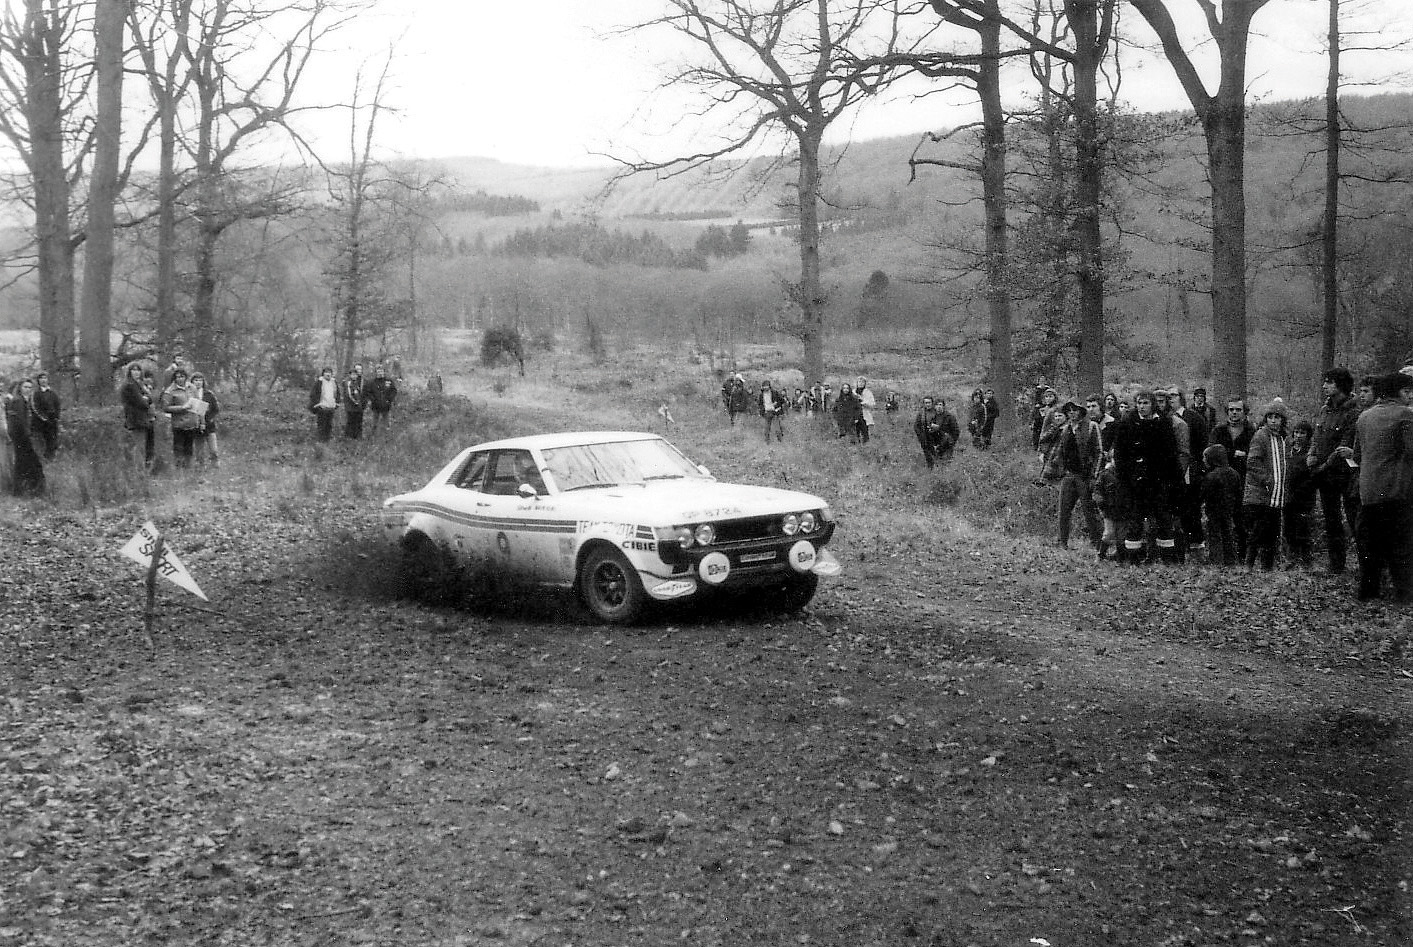 Toyota Celica on Forest of Dean Rally